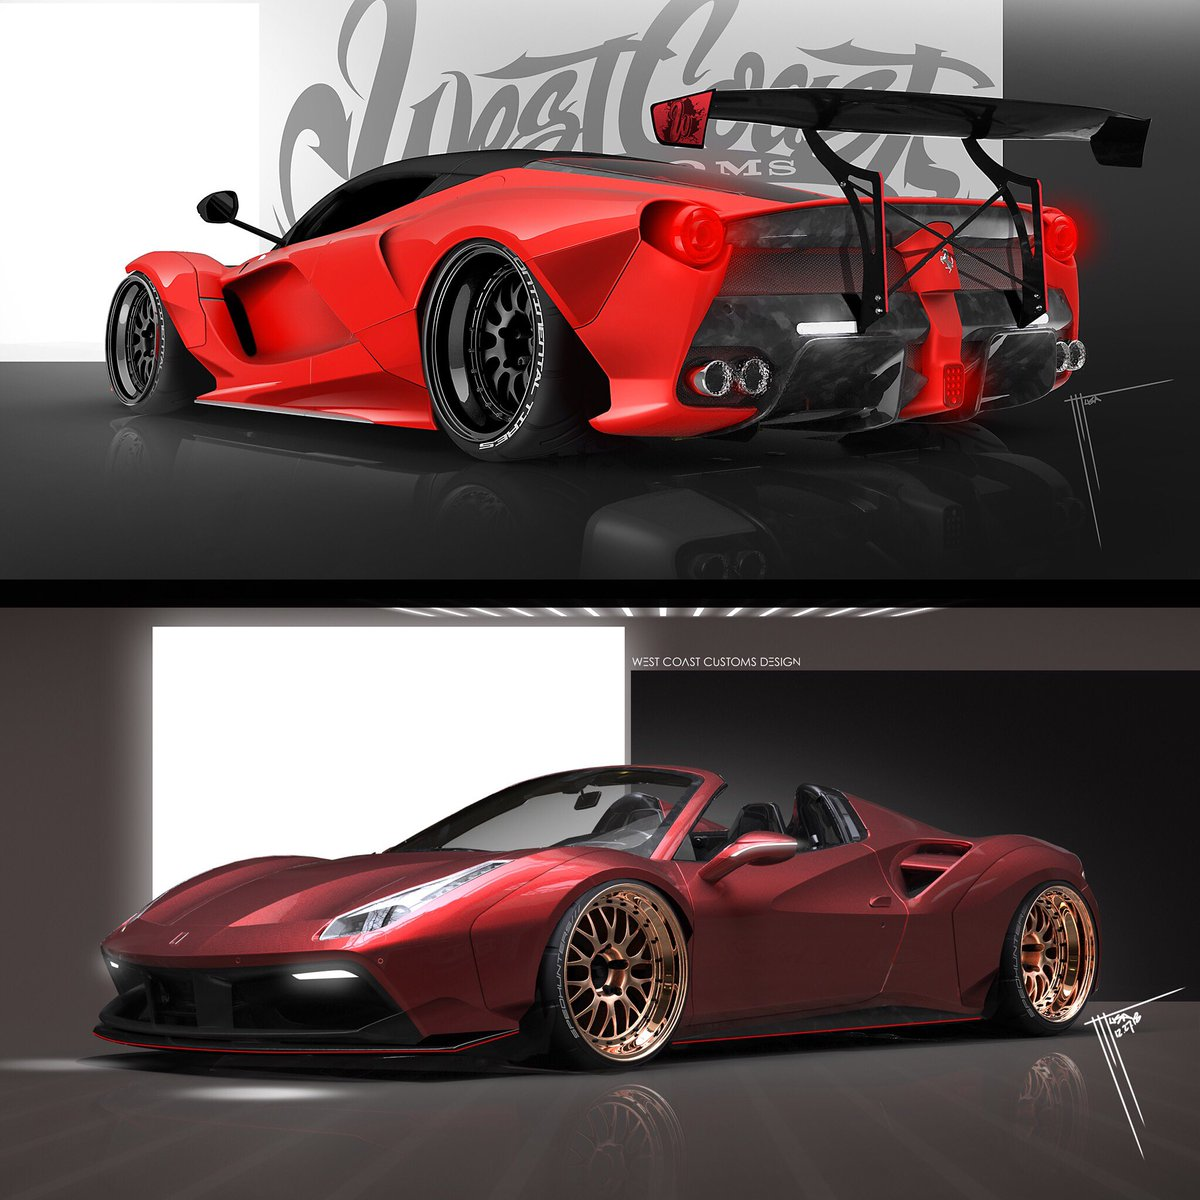 West Coast Customs в Twitter Top Or Bottom Top Laferrari Bottom Ferrari 488 Gtb West Coast Customs Design Which One Would You Want To See Come To Life Laferrari Ferrari Westcoastcustoms Https T Co Uckmnhe1bz